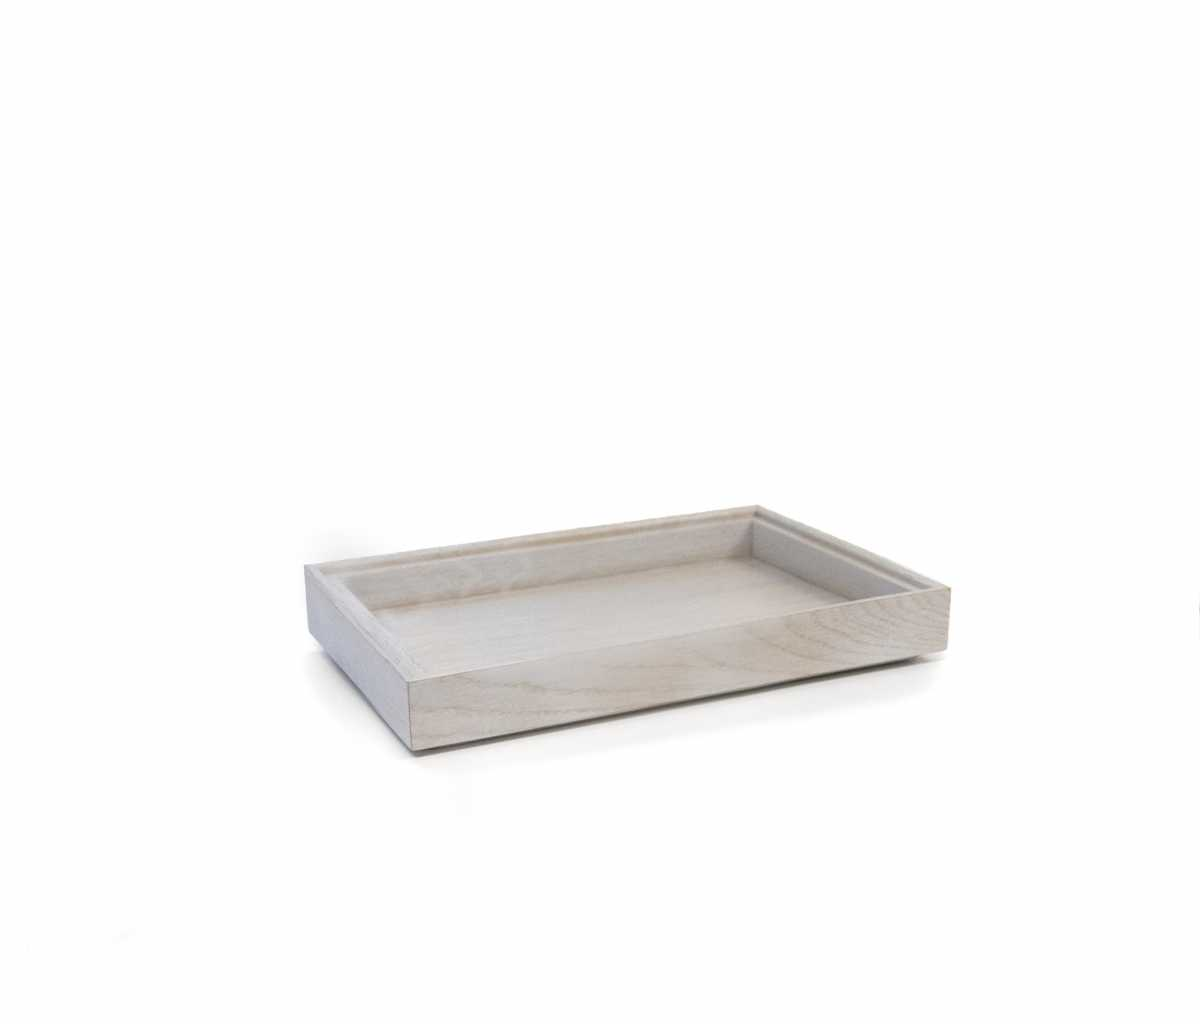 CRASTER Flow White-Washed Tray 1.4